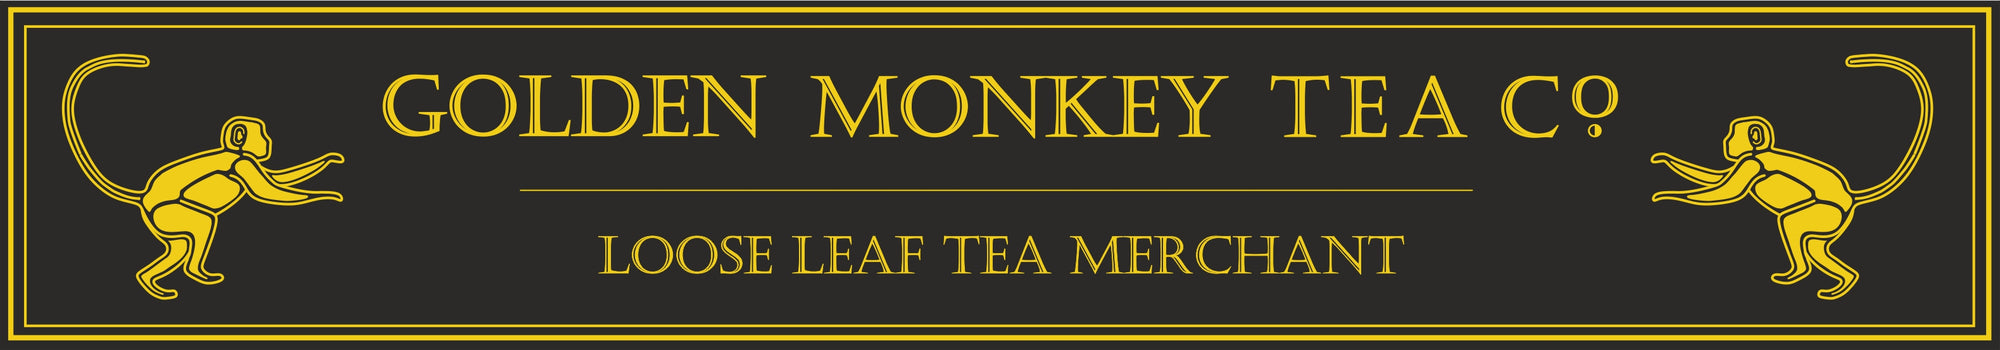 Golden Monkey Tea Company